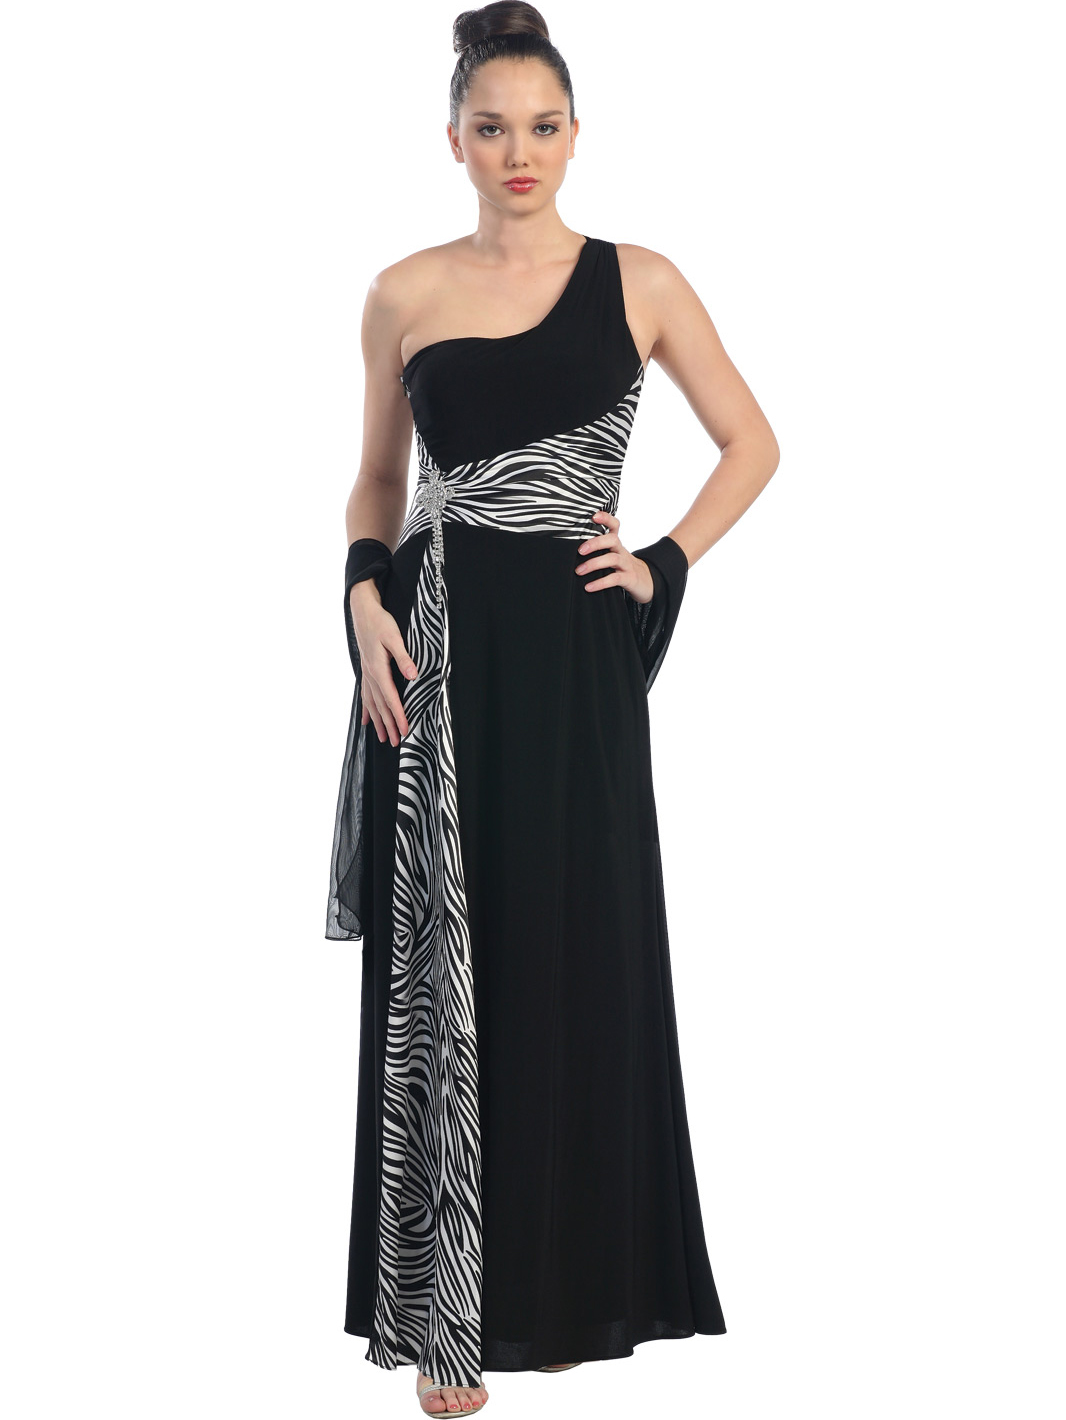 One Shoulder Animal Print Evening Dress | Sung Boutique L.A.